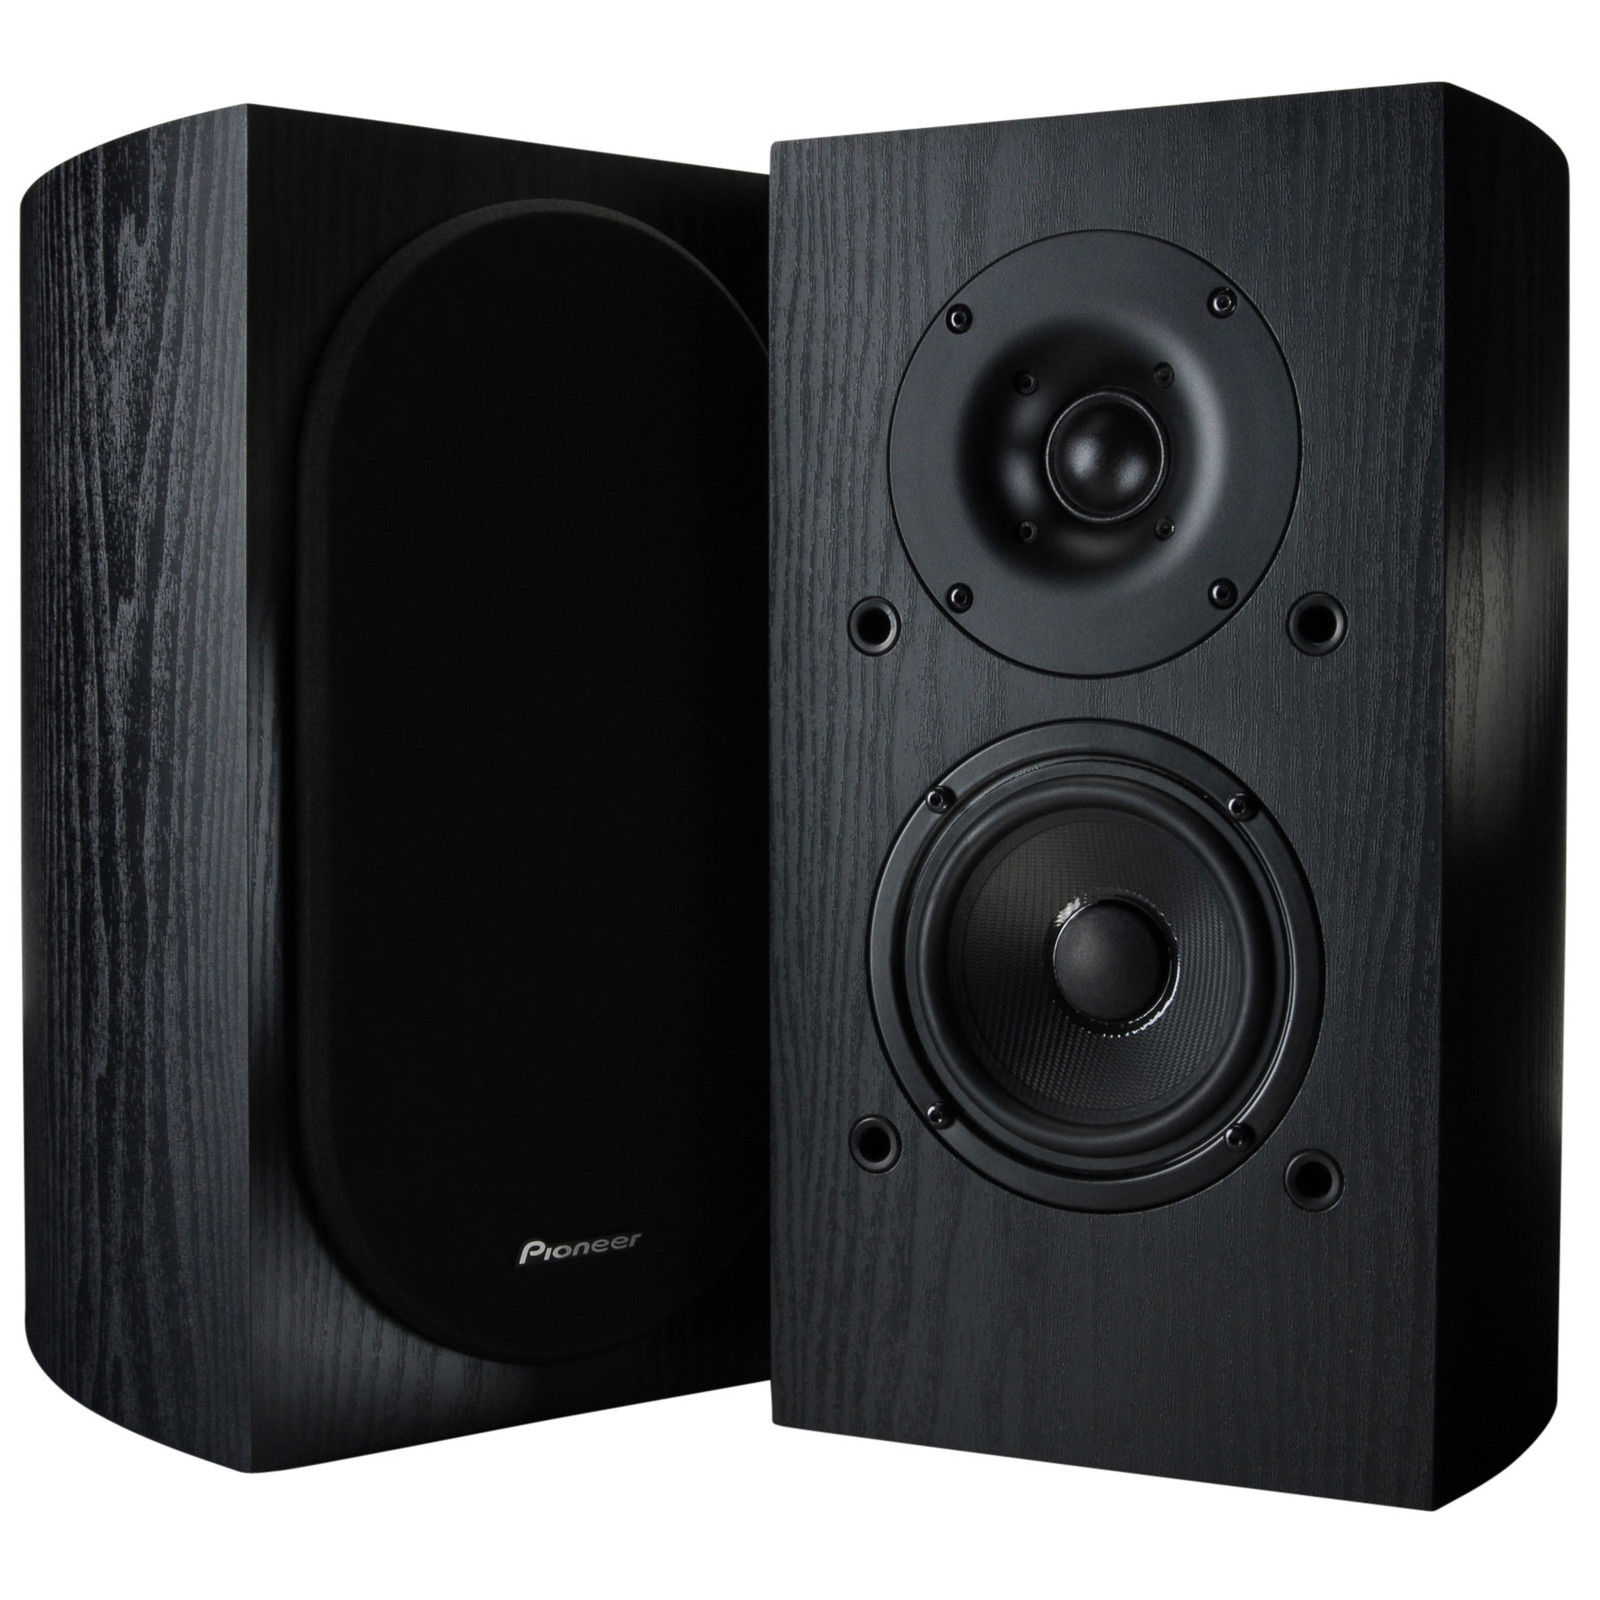 Pioneer SP-BS22 Andrew Jones Designed Bookshelf Speaker, DxWXH 8.4 x 7.1 x 12.6 inches